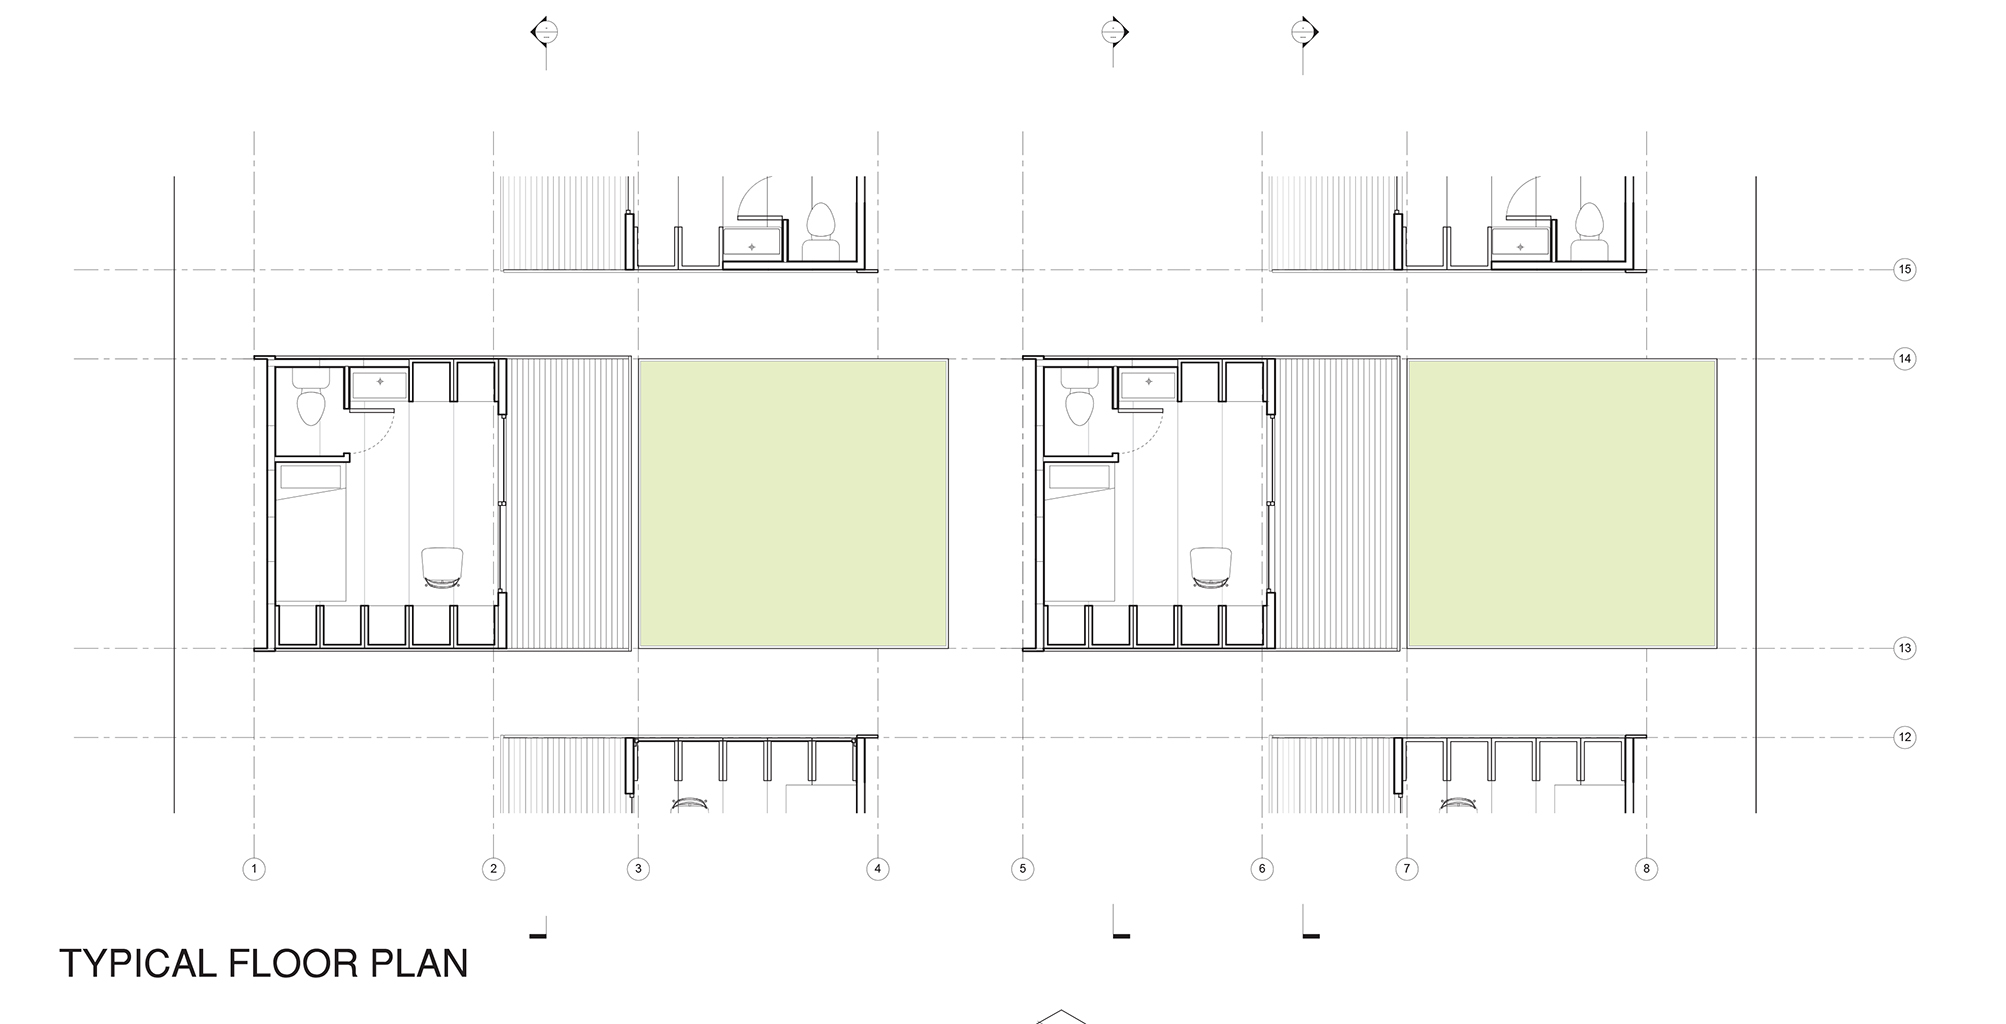 160516_tinyhome_typical floor plan_WEB.jpg